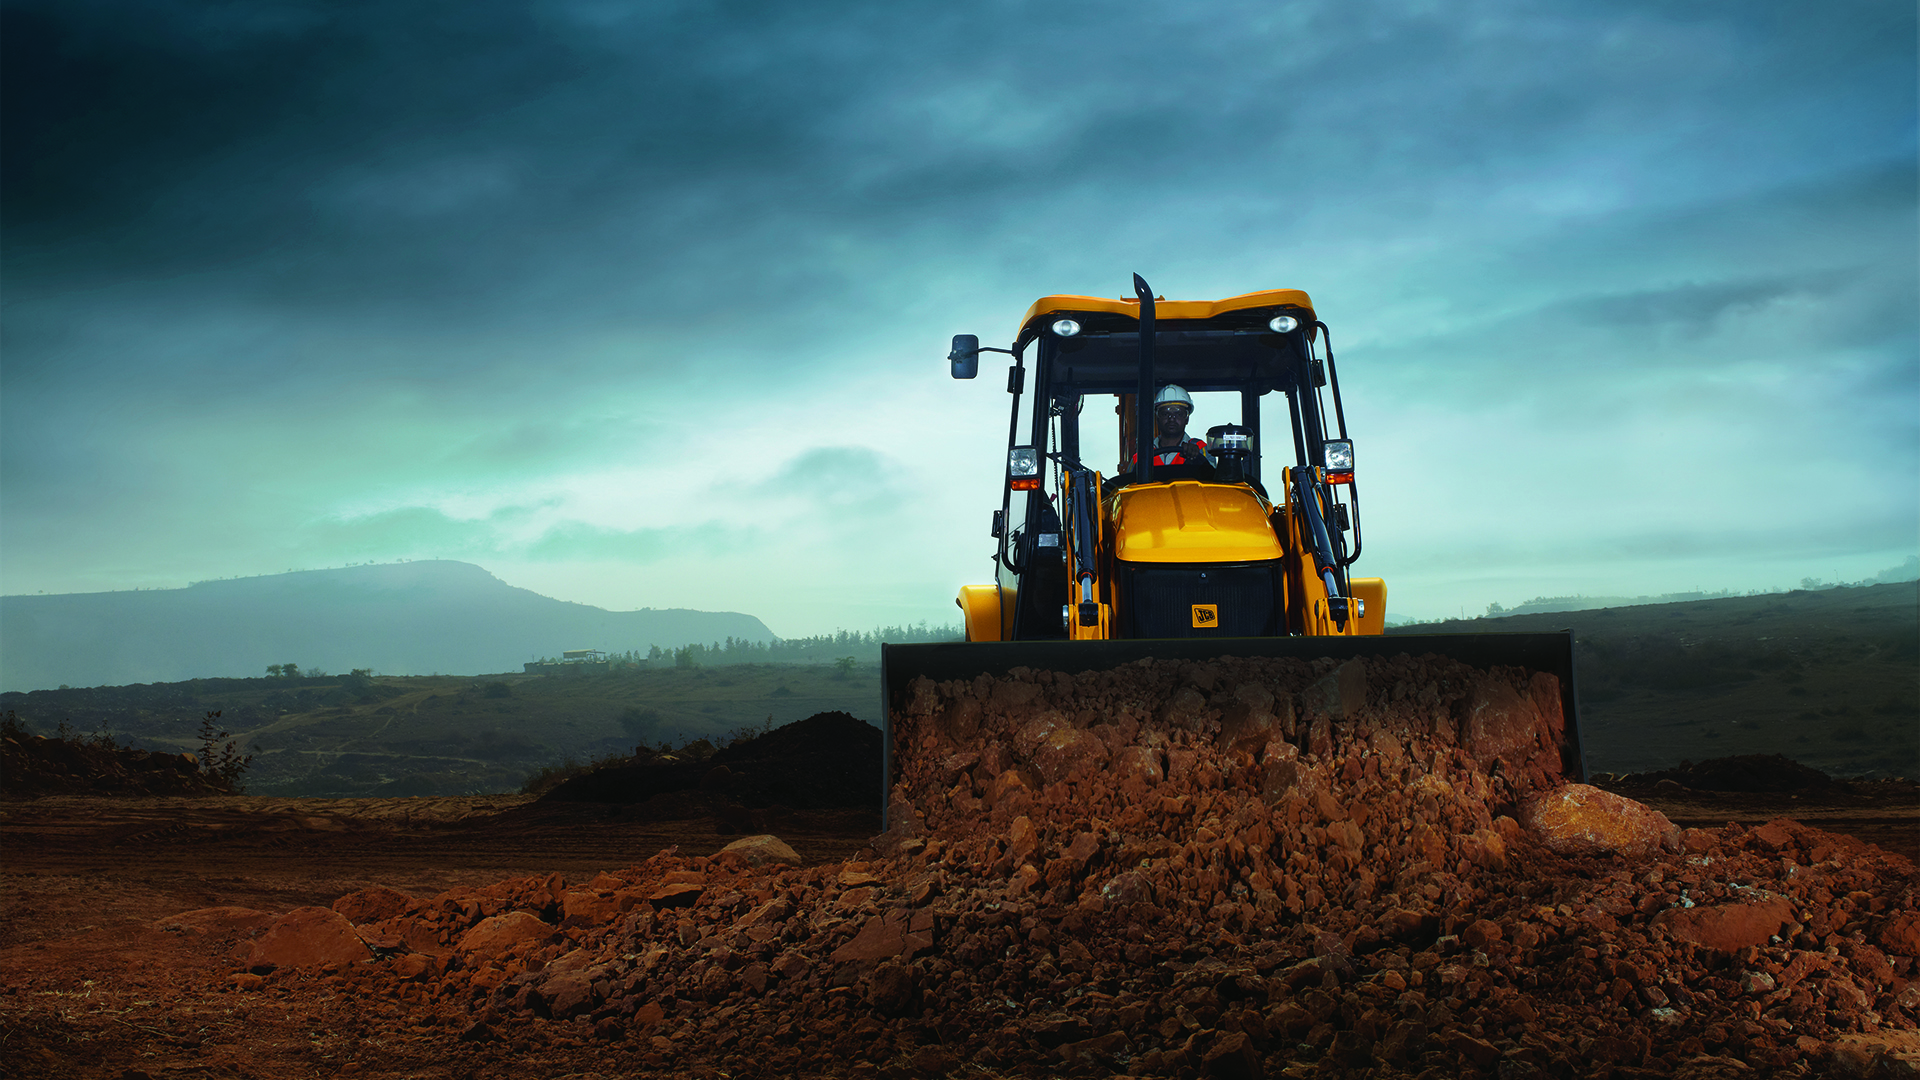 JCB Backhoe Loader 3DX Wallpaper